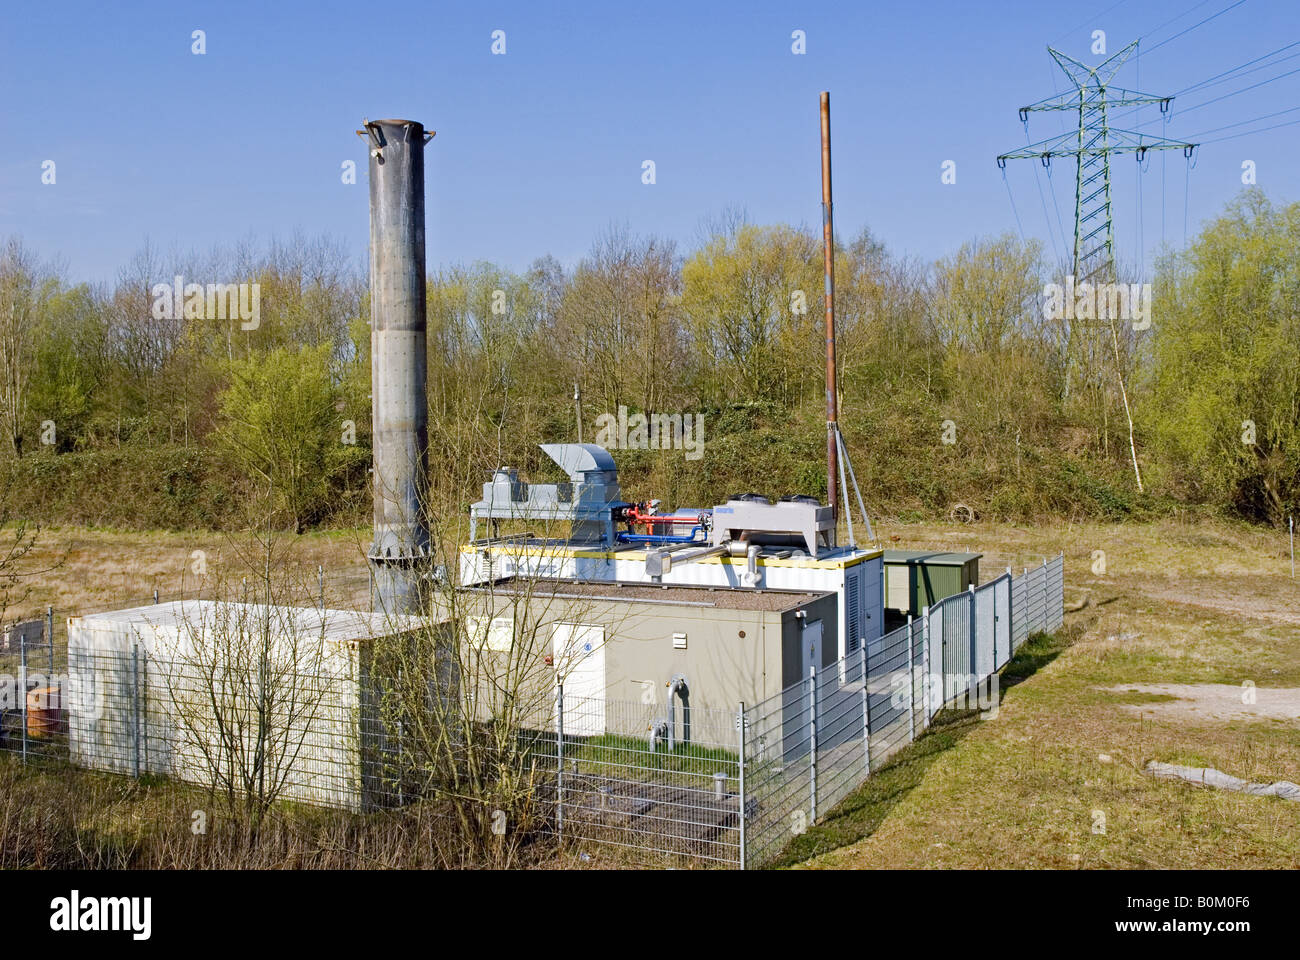 Generator producing electricity from methane gases from household waste landfill, Oldenburg, Lower Saxony, Germany. - Stock Image